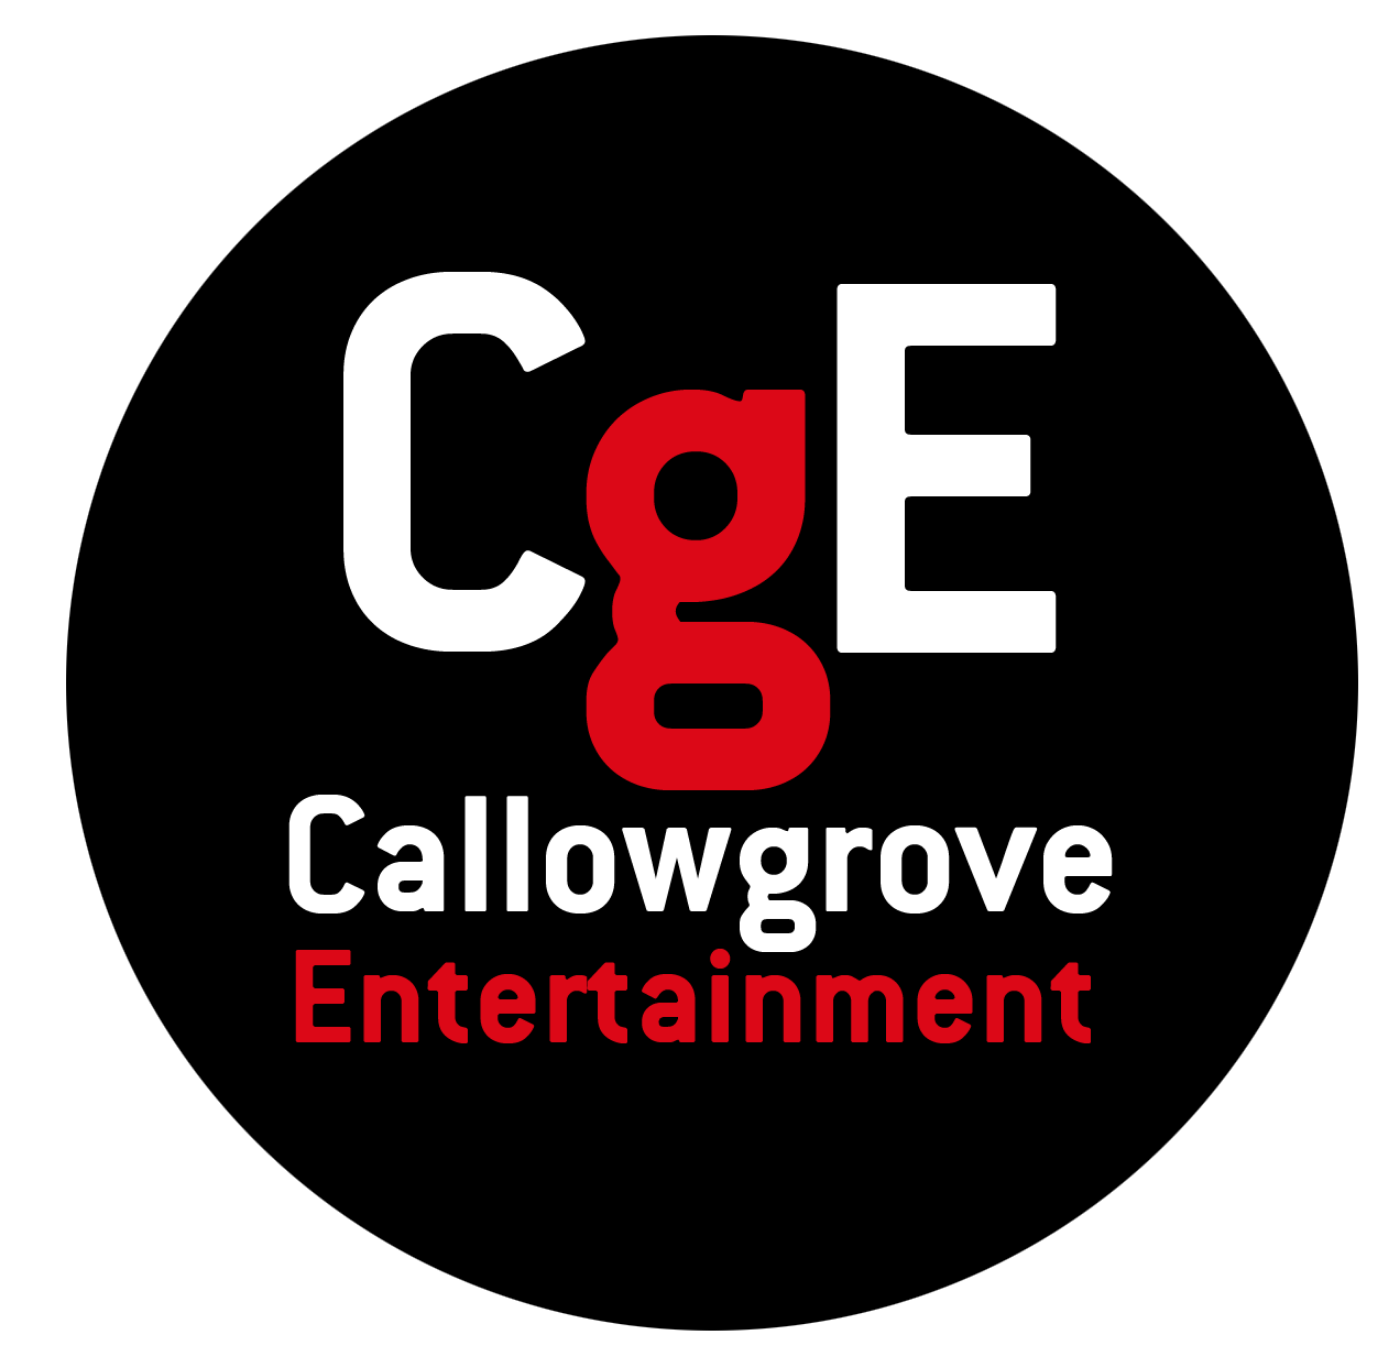 callowgrove Entertainment